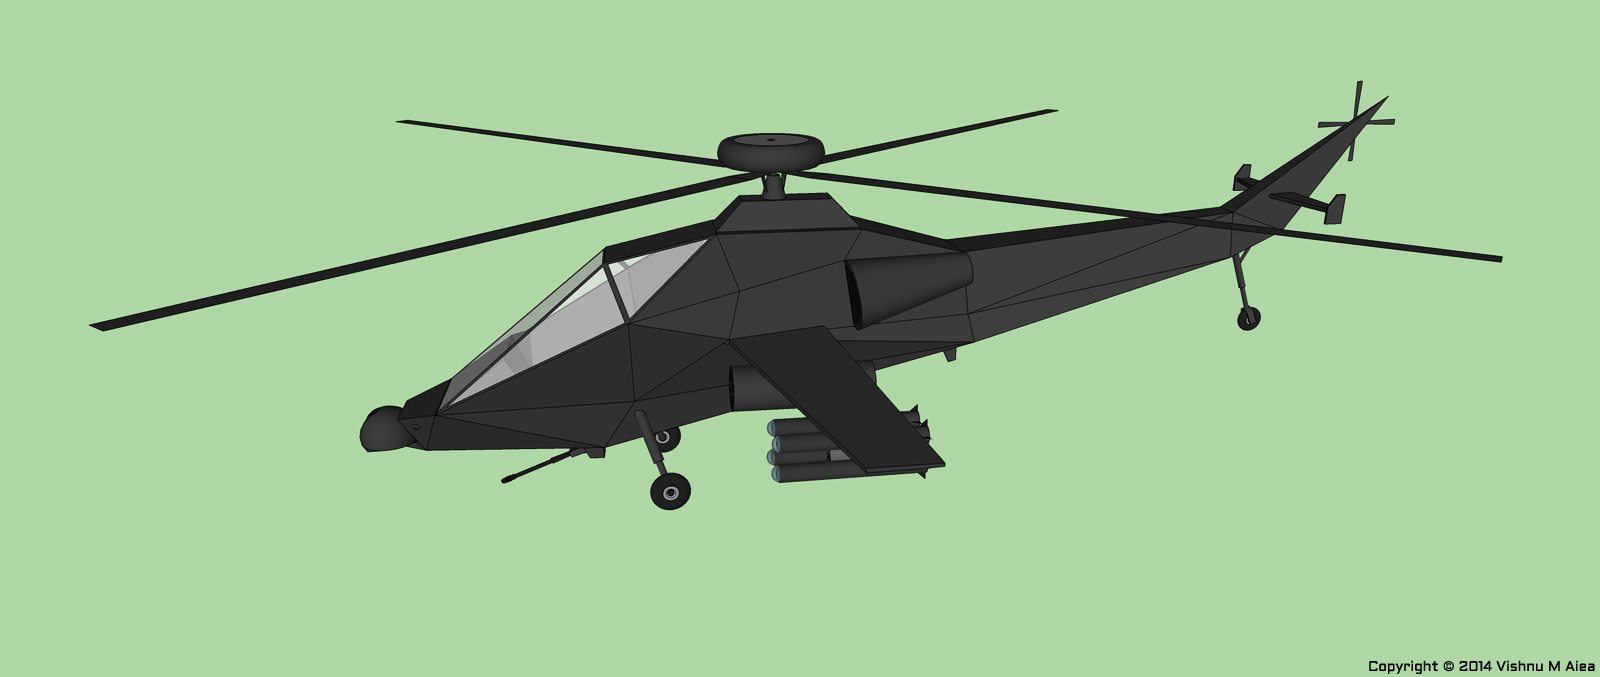 attack helicopter sketchup design